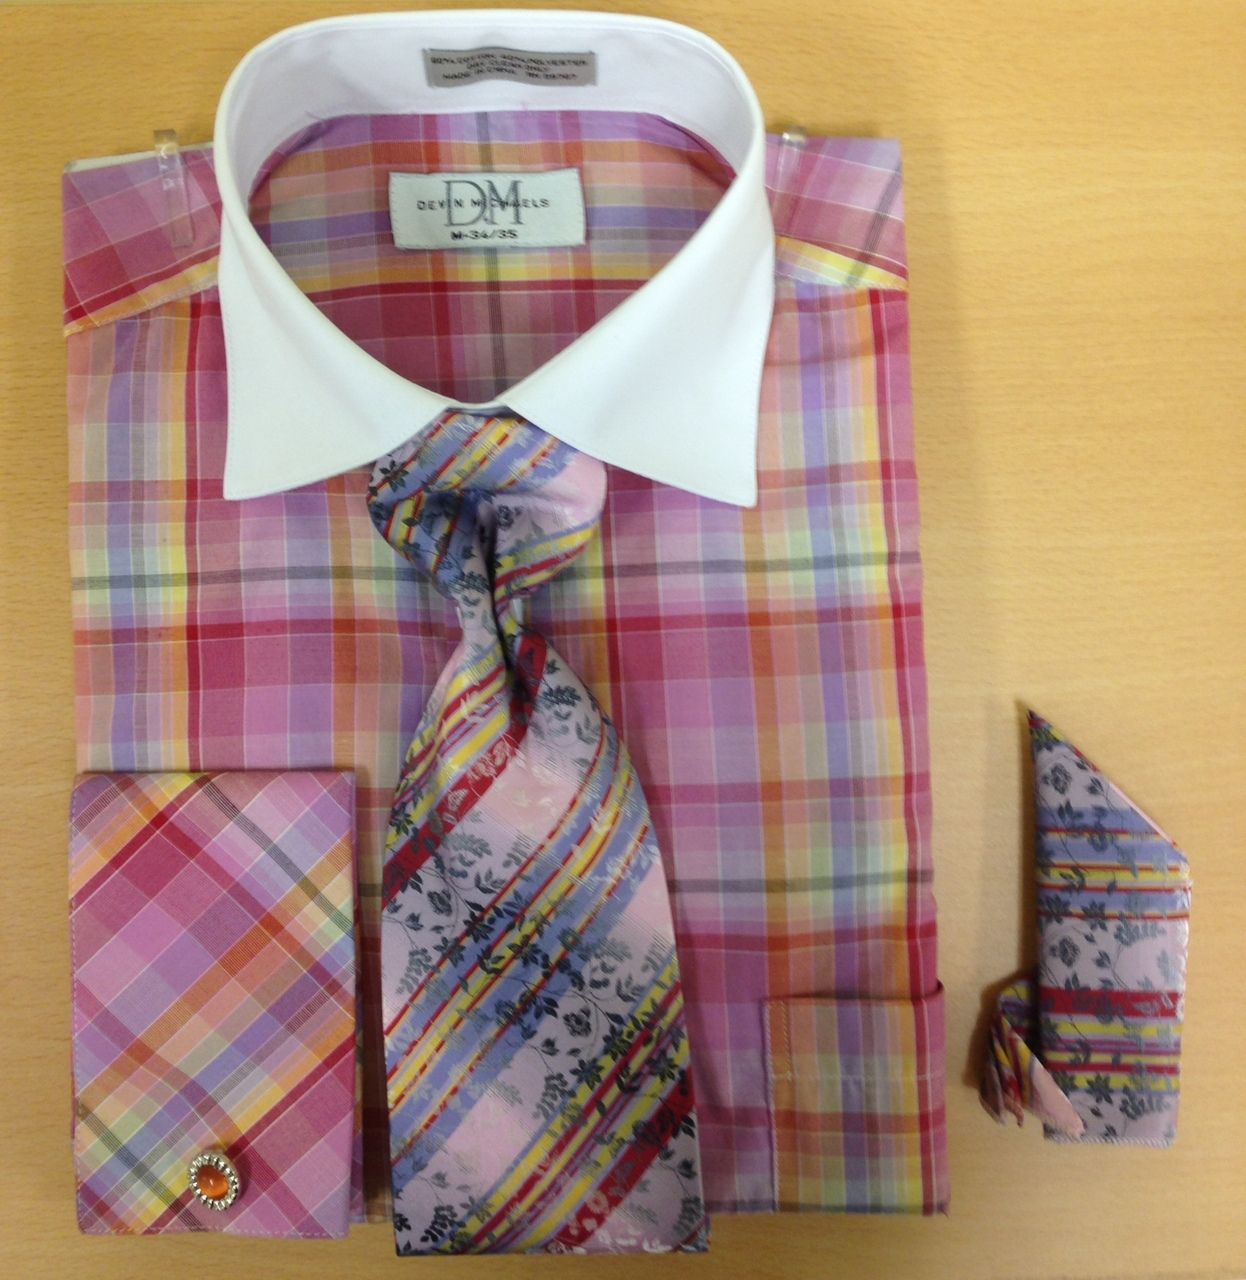 Men's Fashion Madras Plaid Cufflink Dress Shirt Set - Pink/Gold